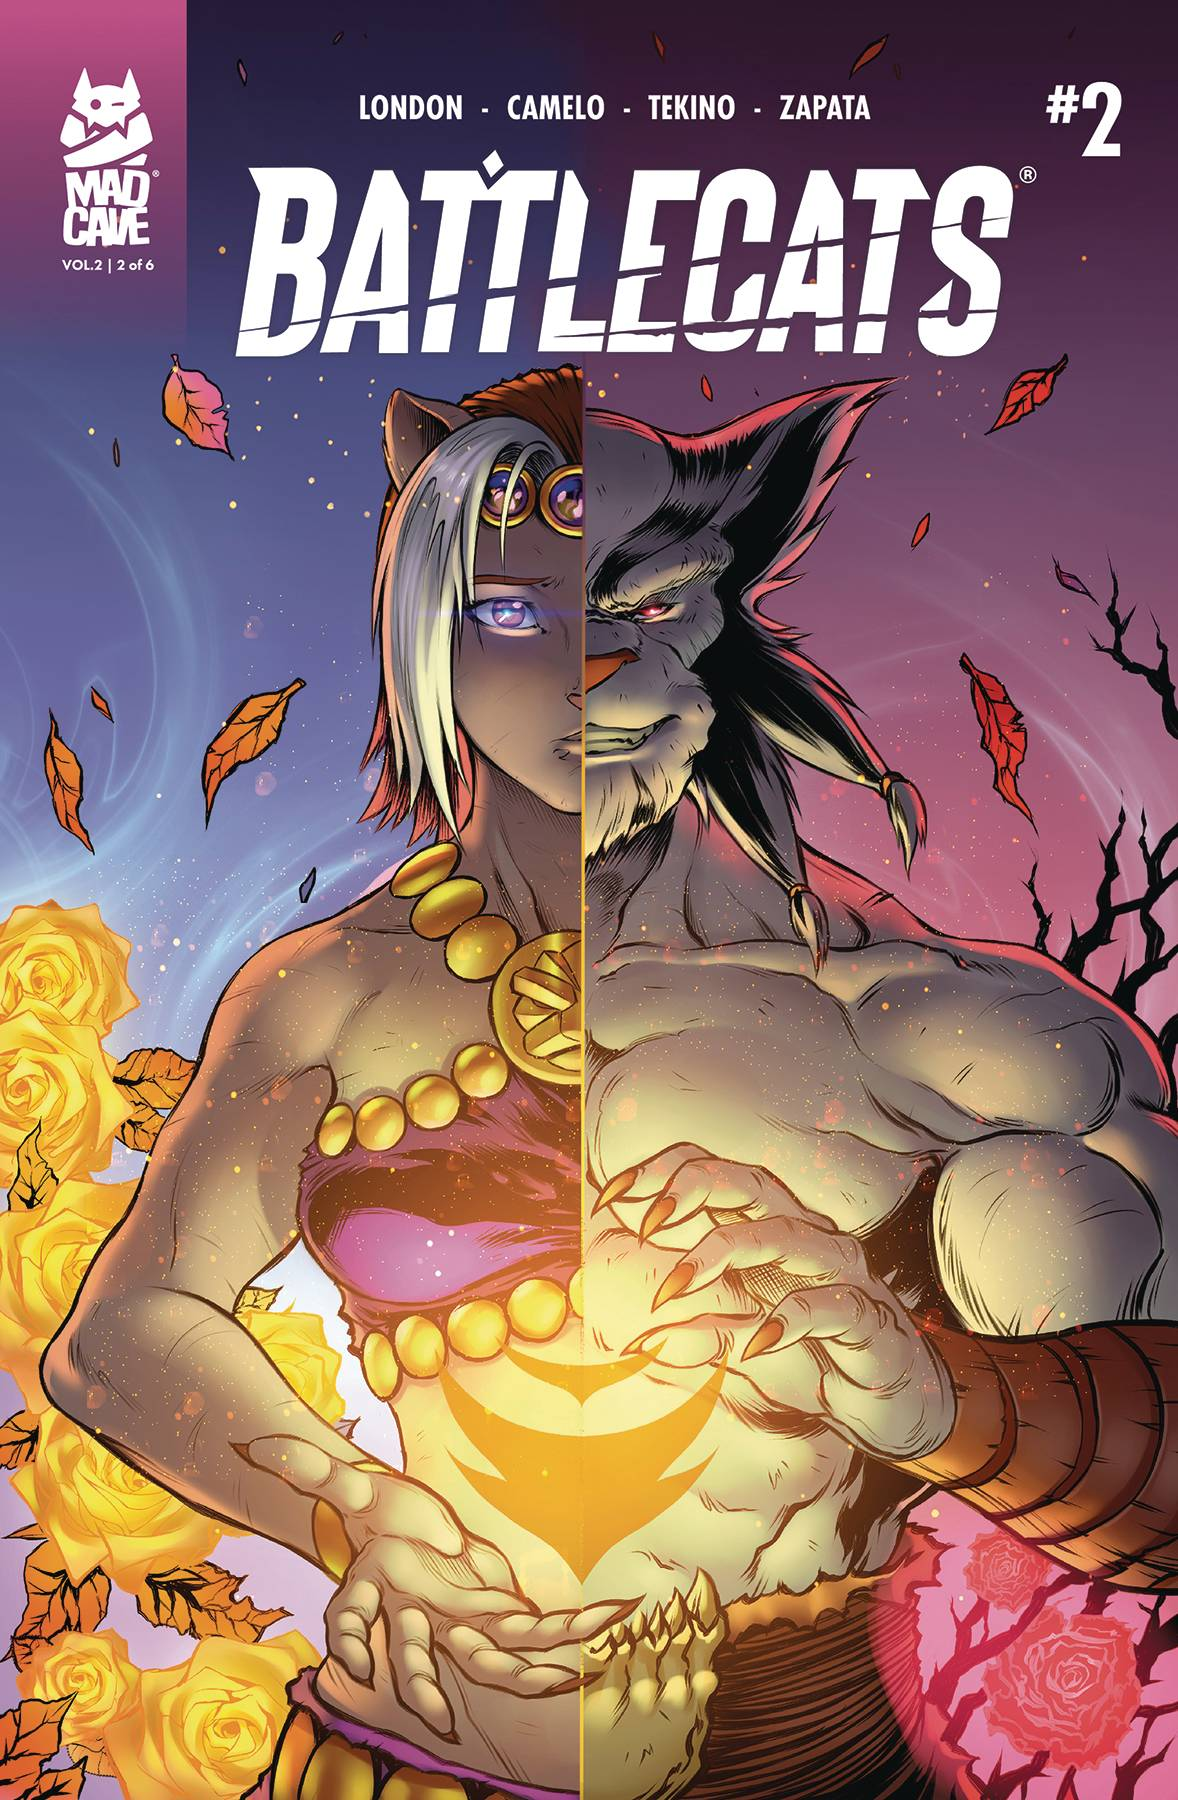 BATTLECATS VOL 2 7 of 5 2 (OF 6).jpg